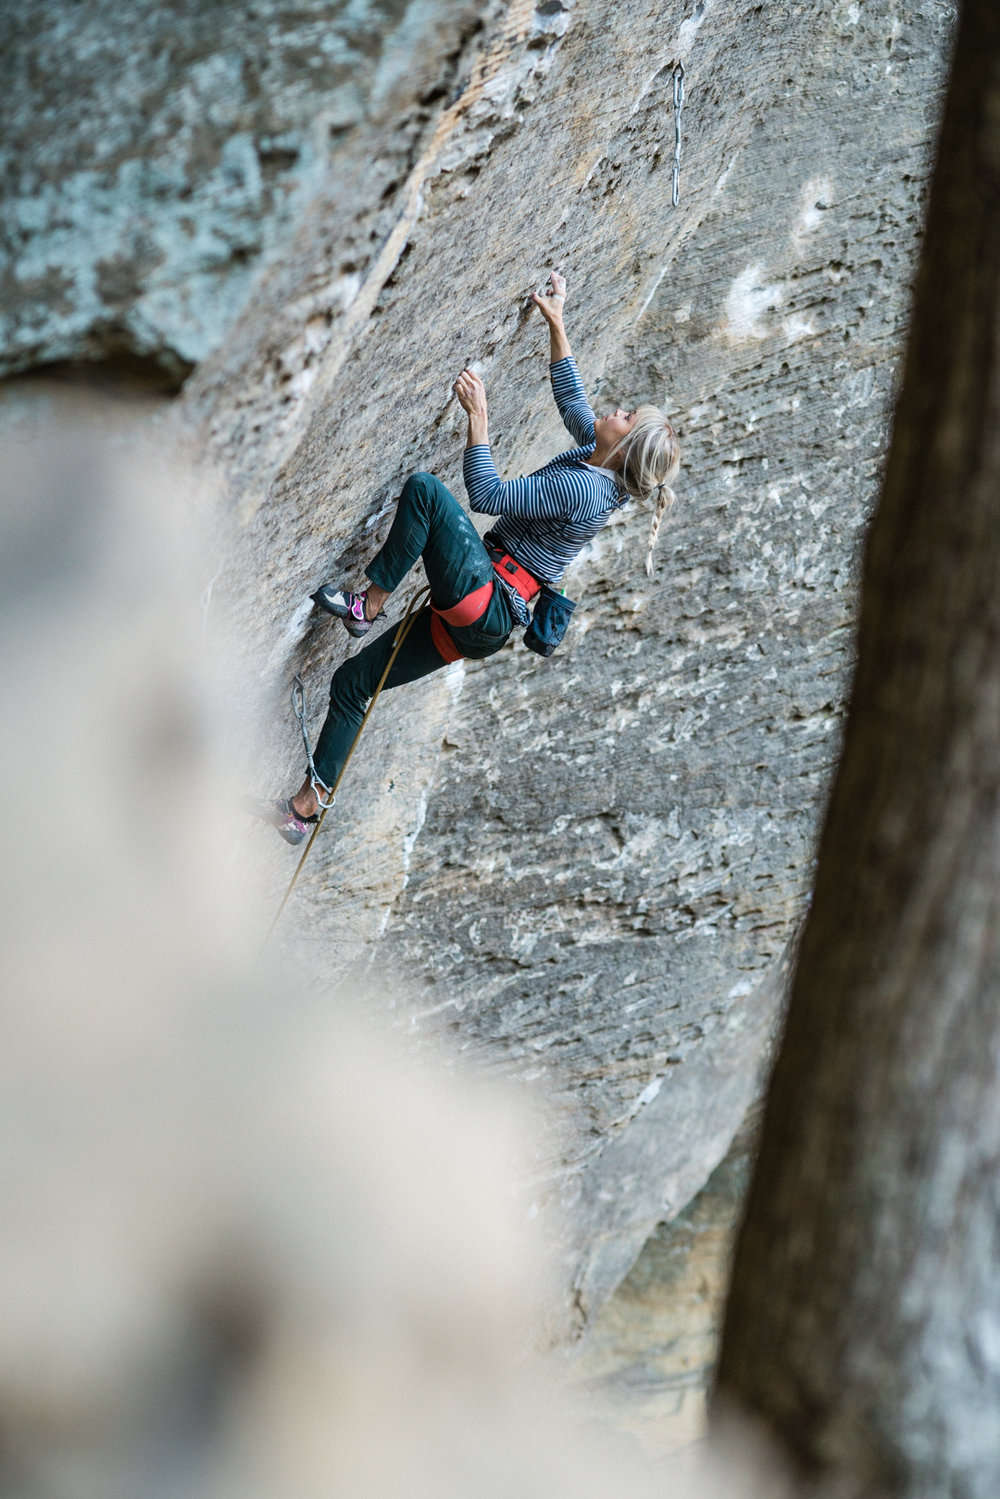 Lucifer, 8c+, Red River Gorge